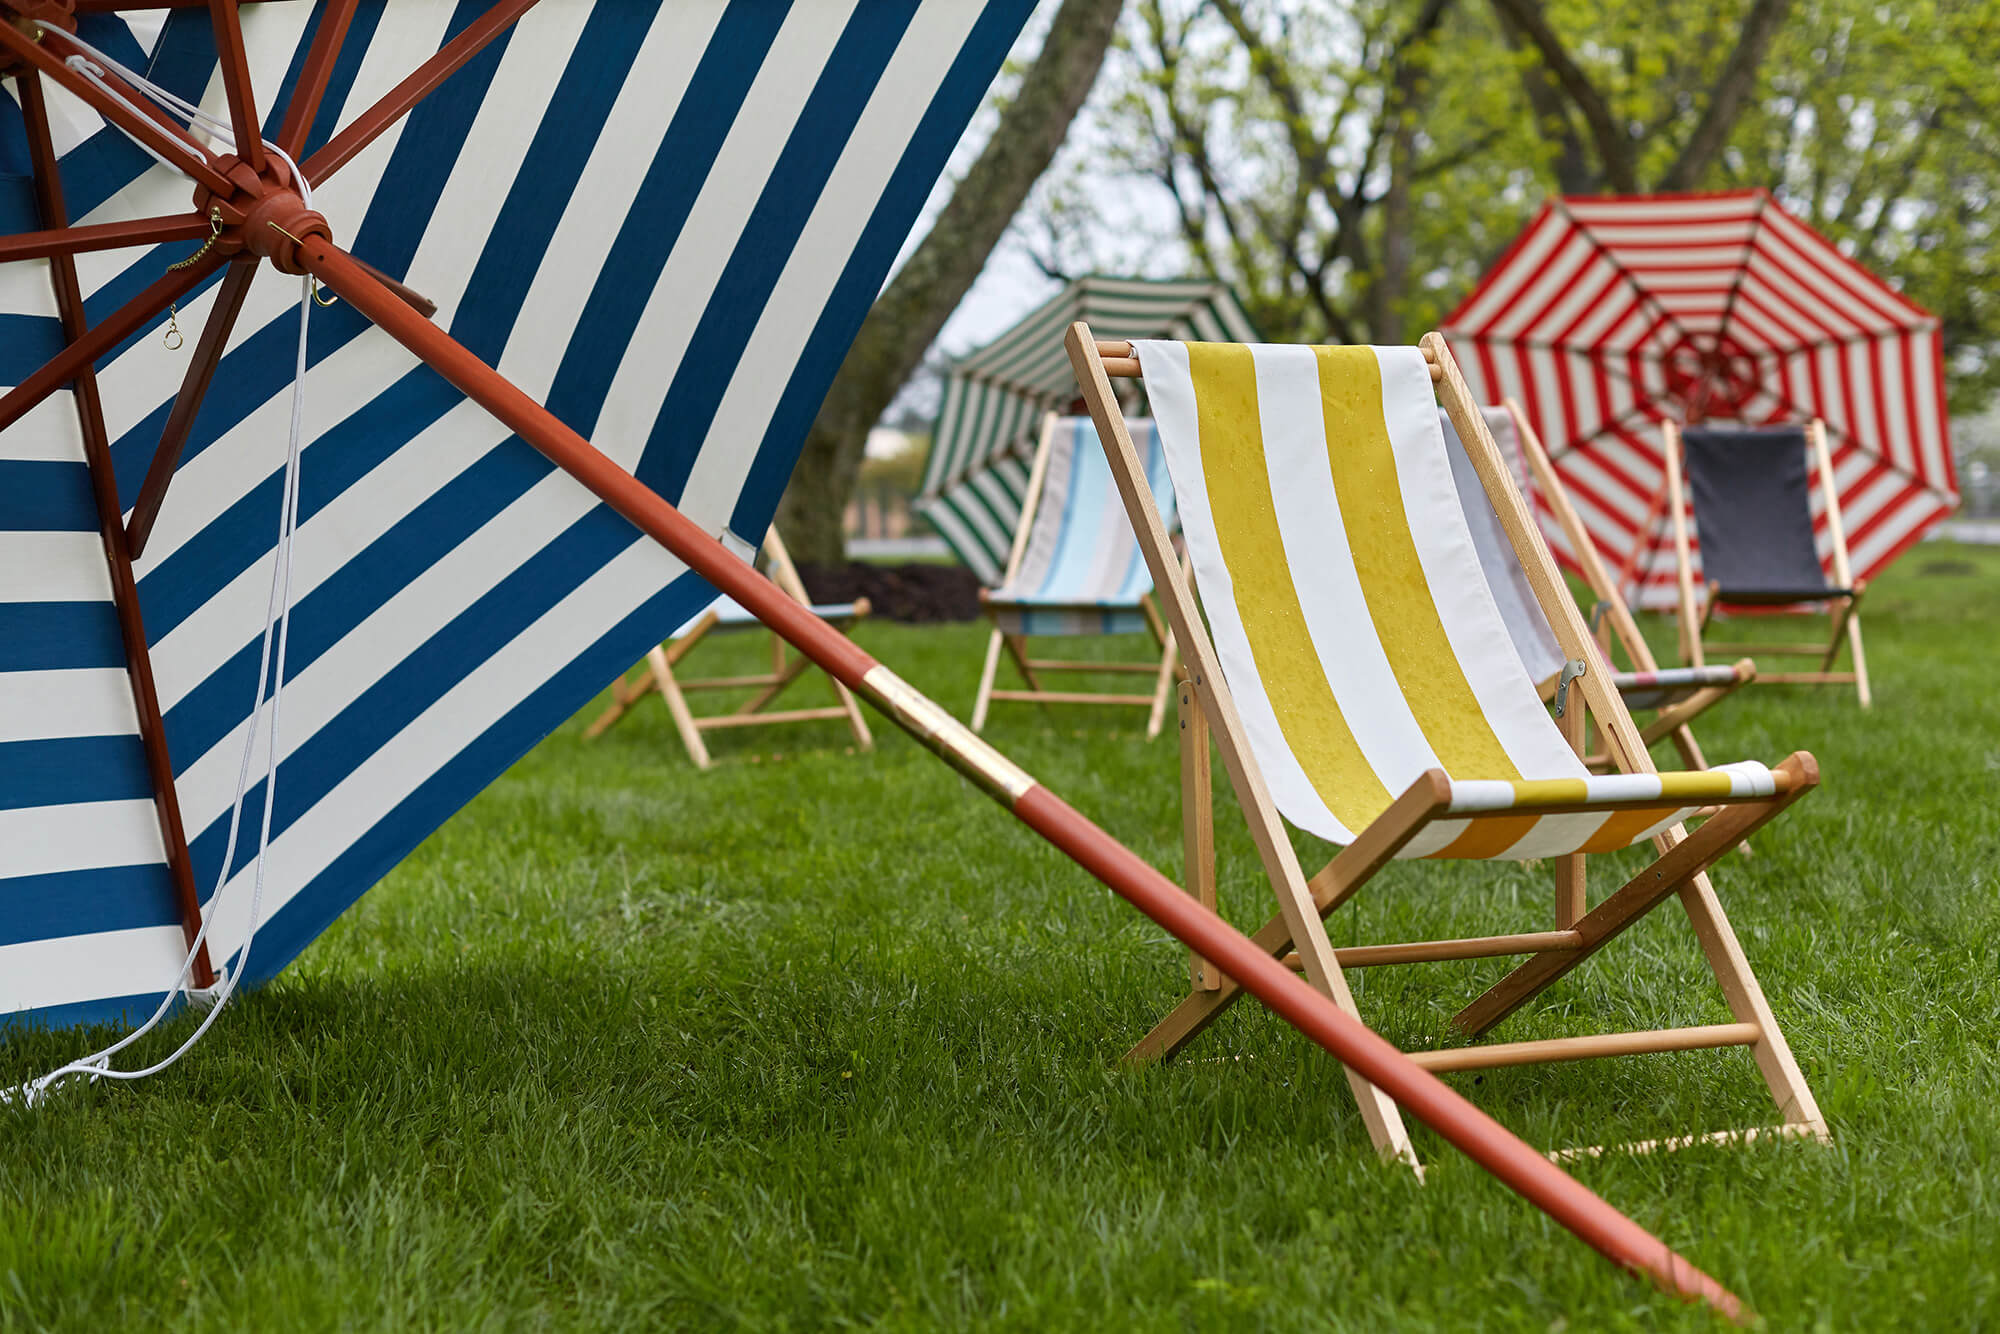 GALLERY_daybed Pillows Patio_ALT Outdoor Chairs And Market Umbrellas  Featuring Bright Cabana Striped Fabric ... Part 32